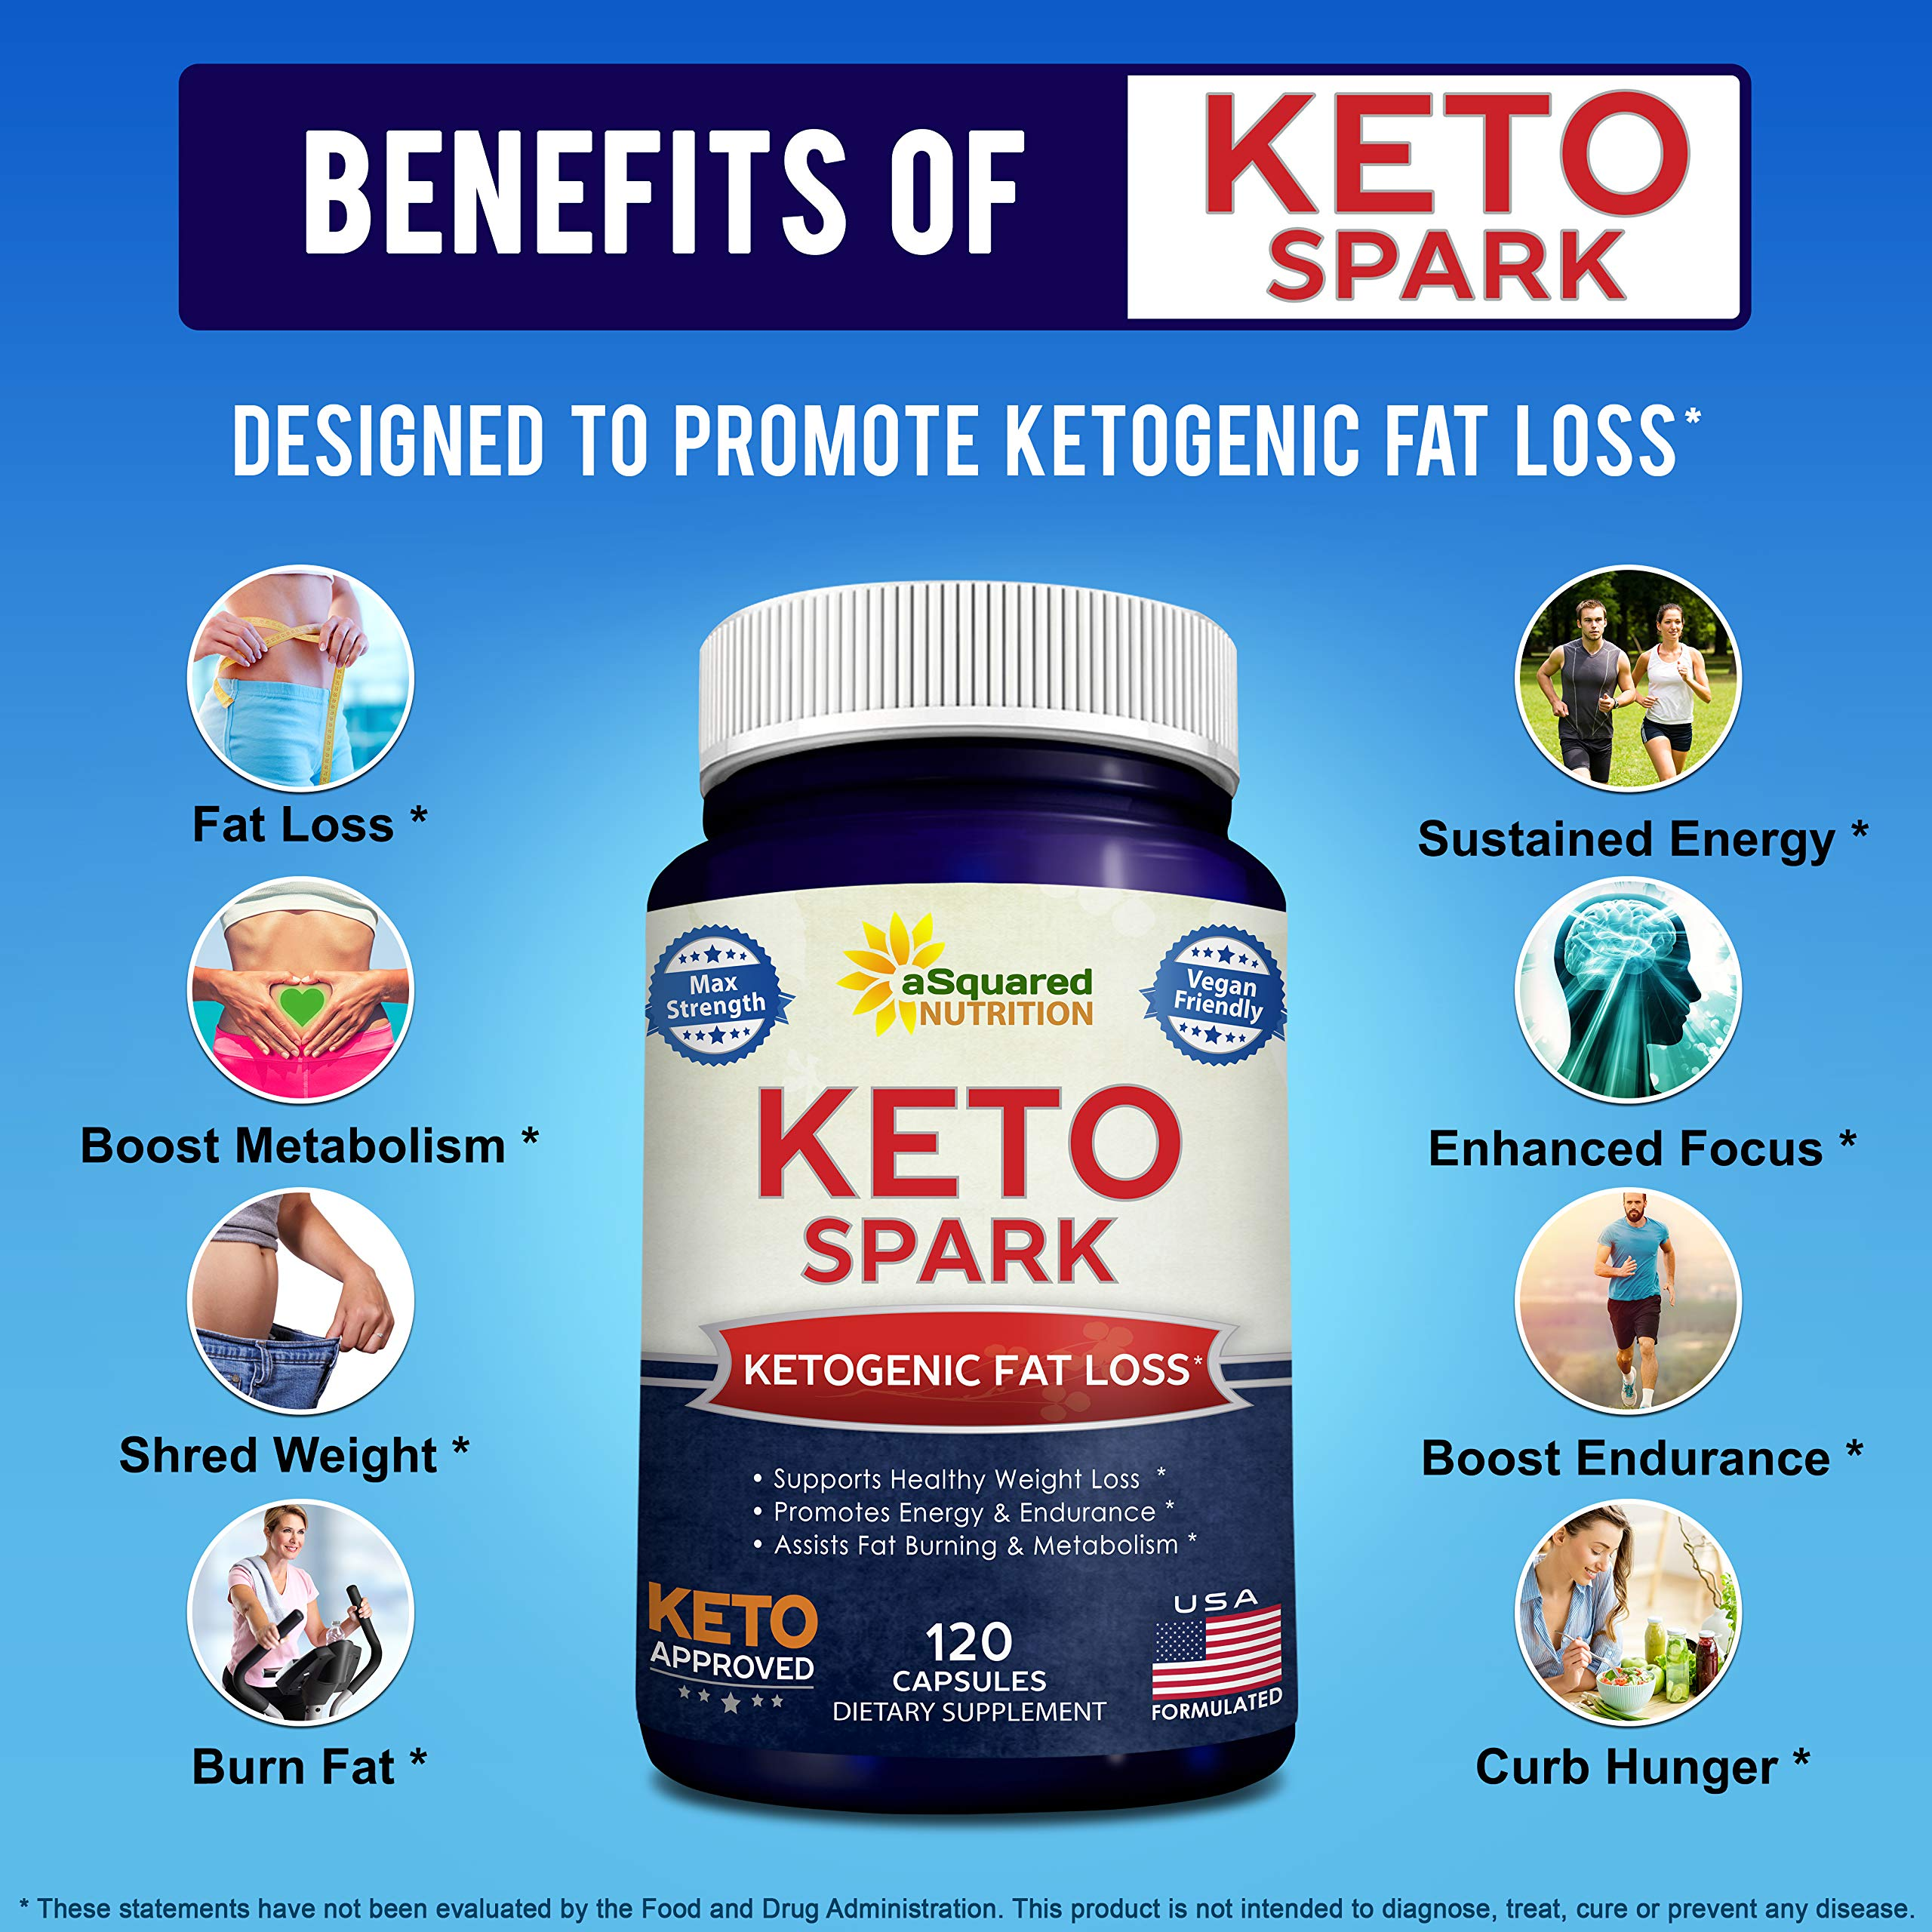 Keto Spark - Supplement for Weight Loss (120 Capsules) - Pills Approved for The Ketogenic & Paleo Diet - Helps Stay in Ketosis, Increase Energy & Focus - Caffeine & Ketones for Women & Men by aSquared Nutrition (Image #2)